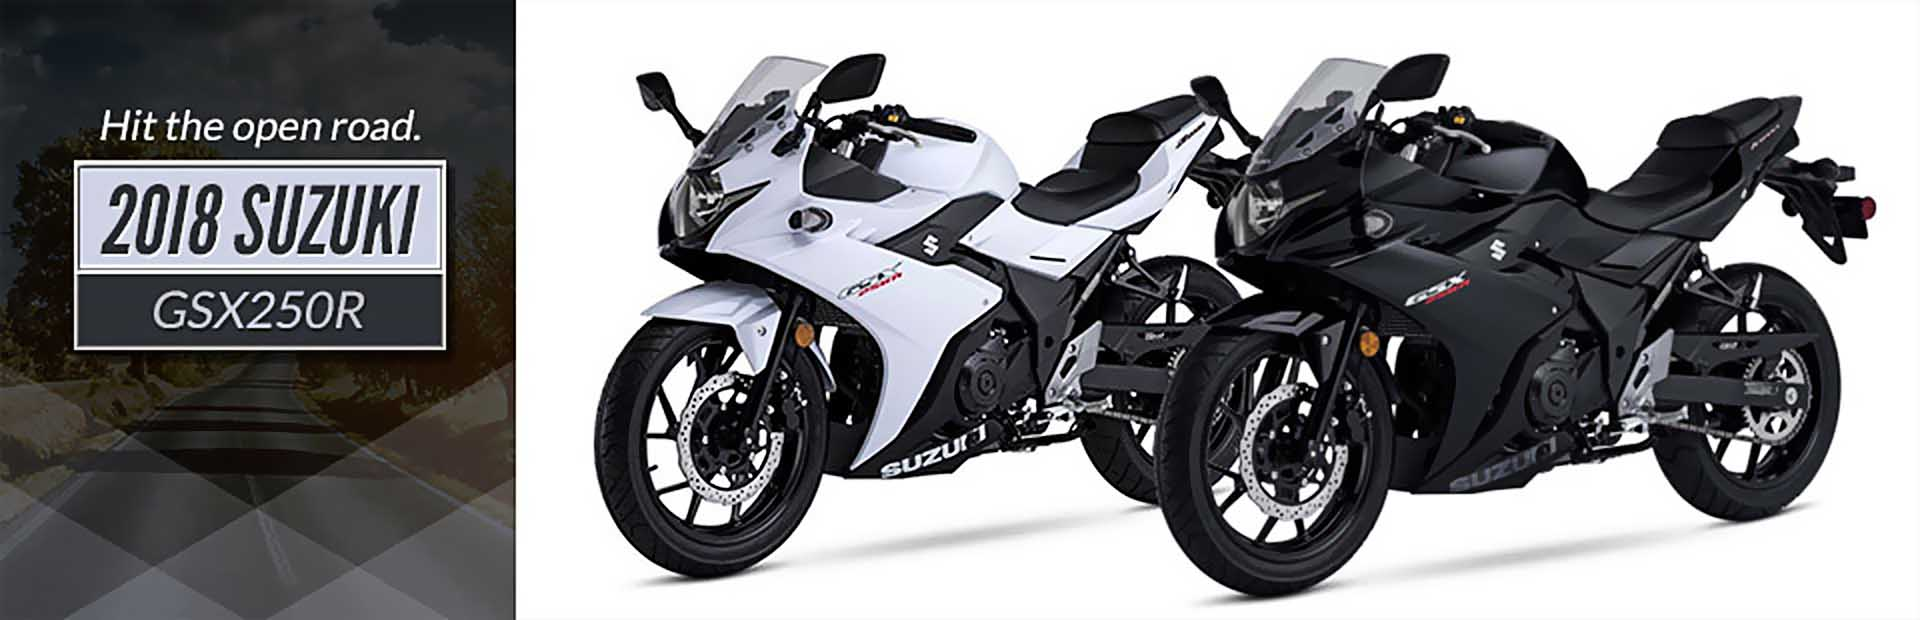 2018 Suzuki GSX250R: Click here to view the model.